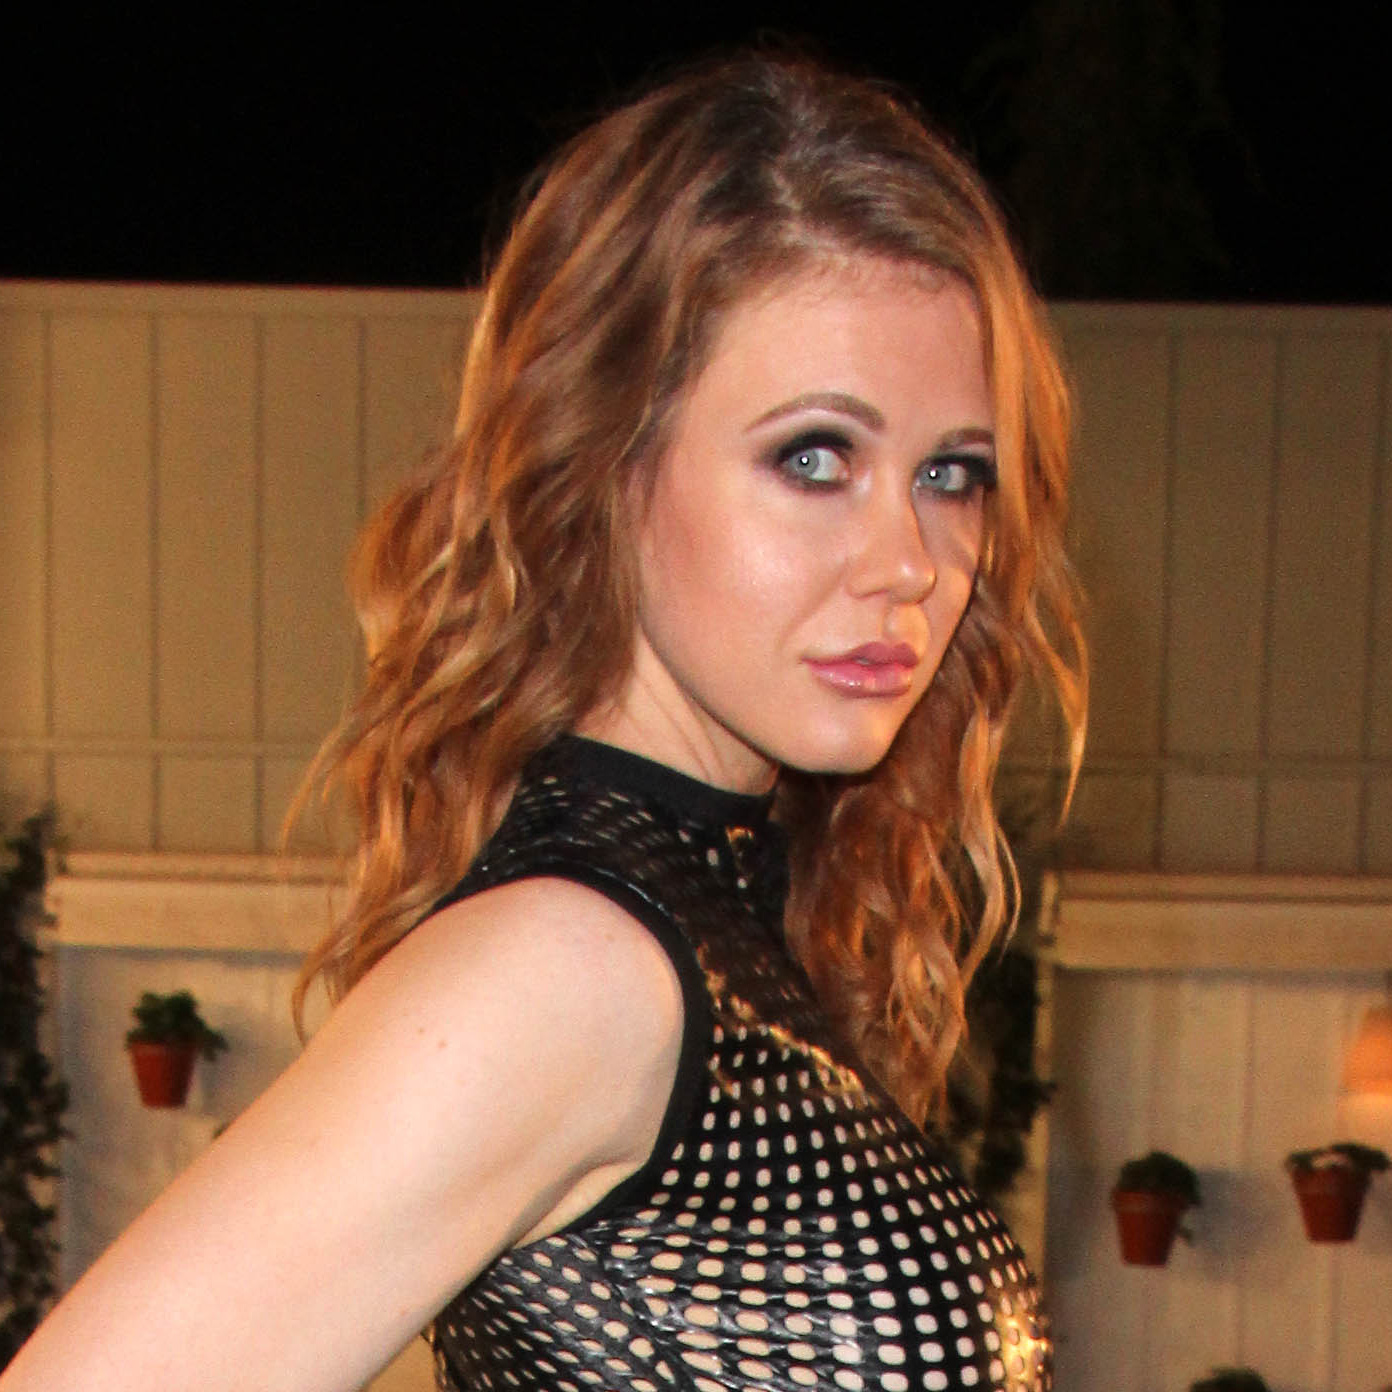 Young Maitland Ward Baxter nudes (38 foto and video), Sexy, Cleavage, Selfie, butt 2017